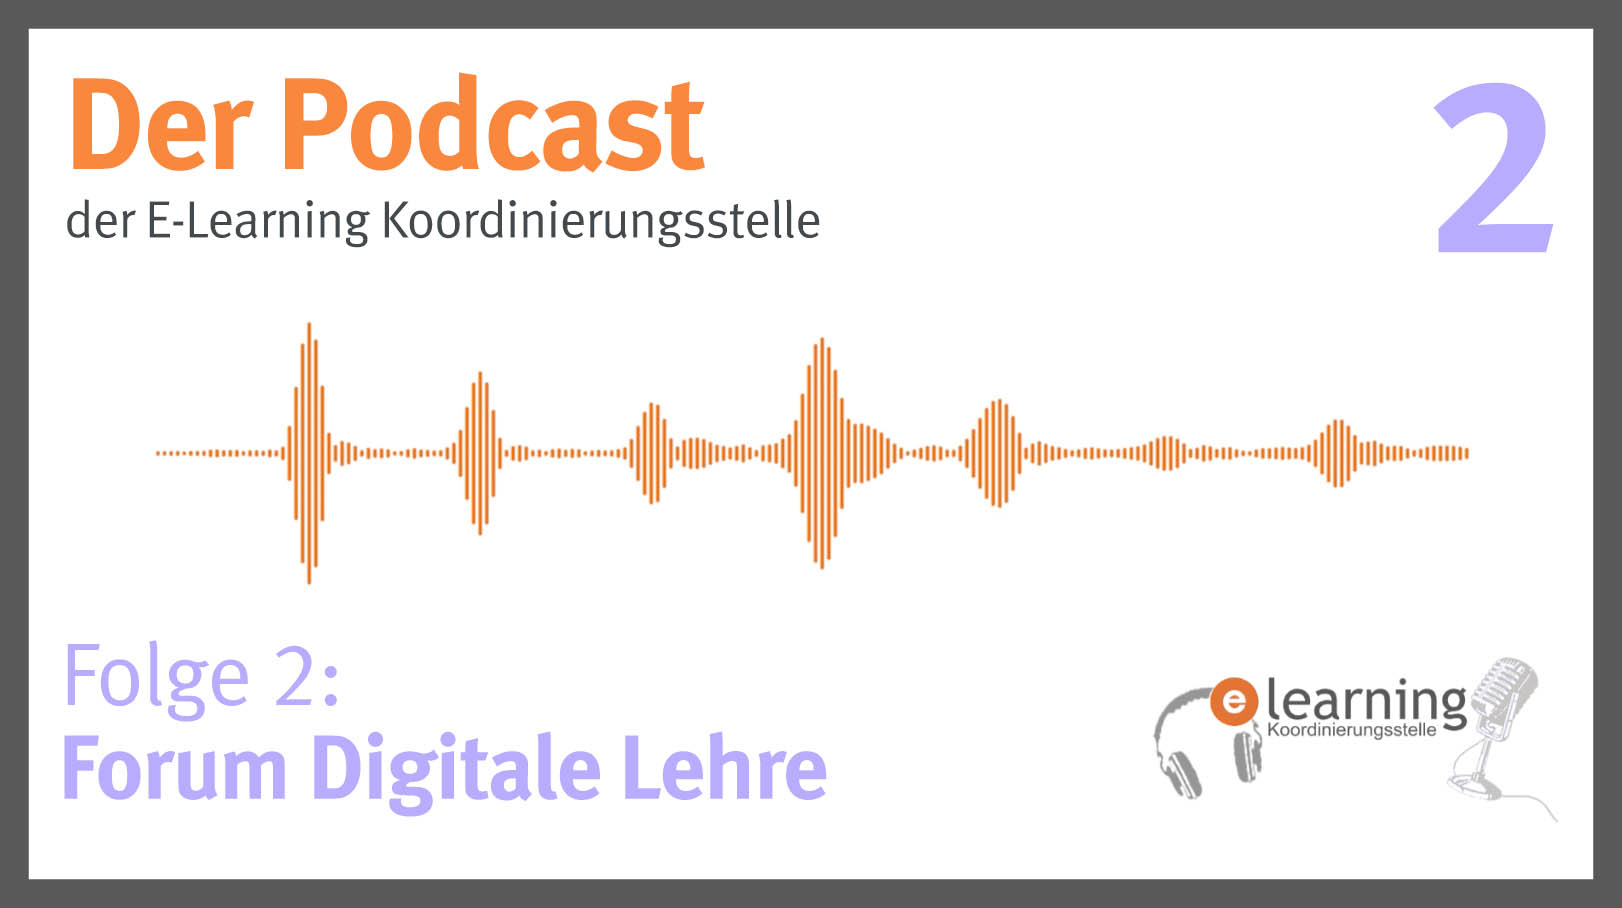 Podcast #2: Das Forum Digitale Lehre